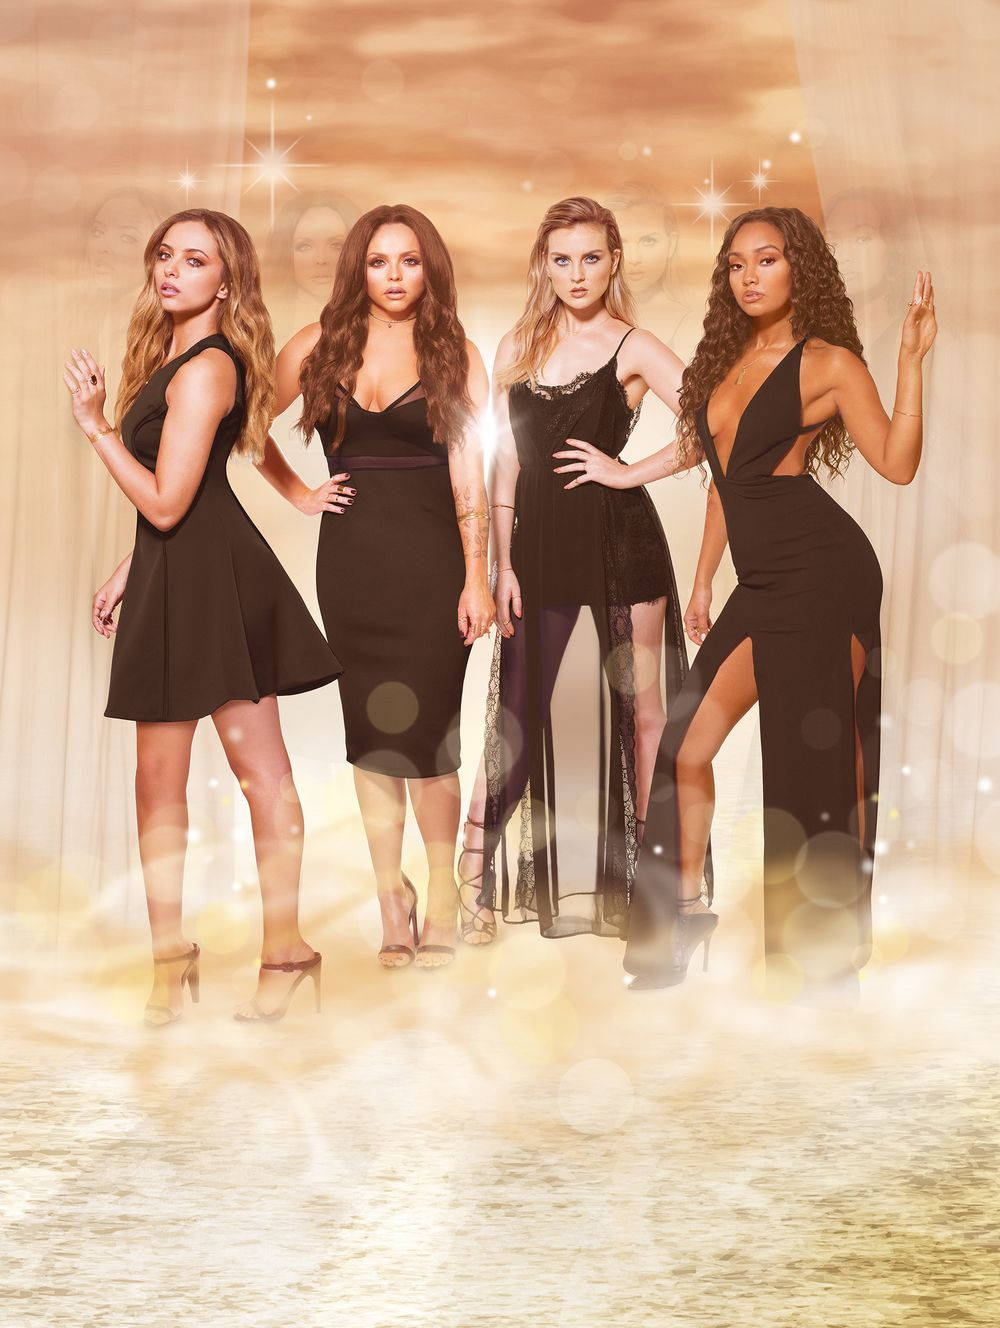 Little Mix for their perfume Gold Magic